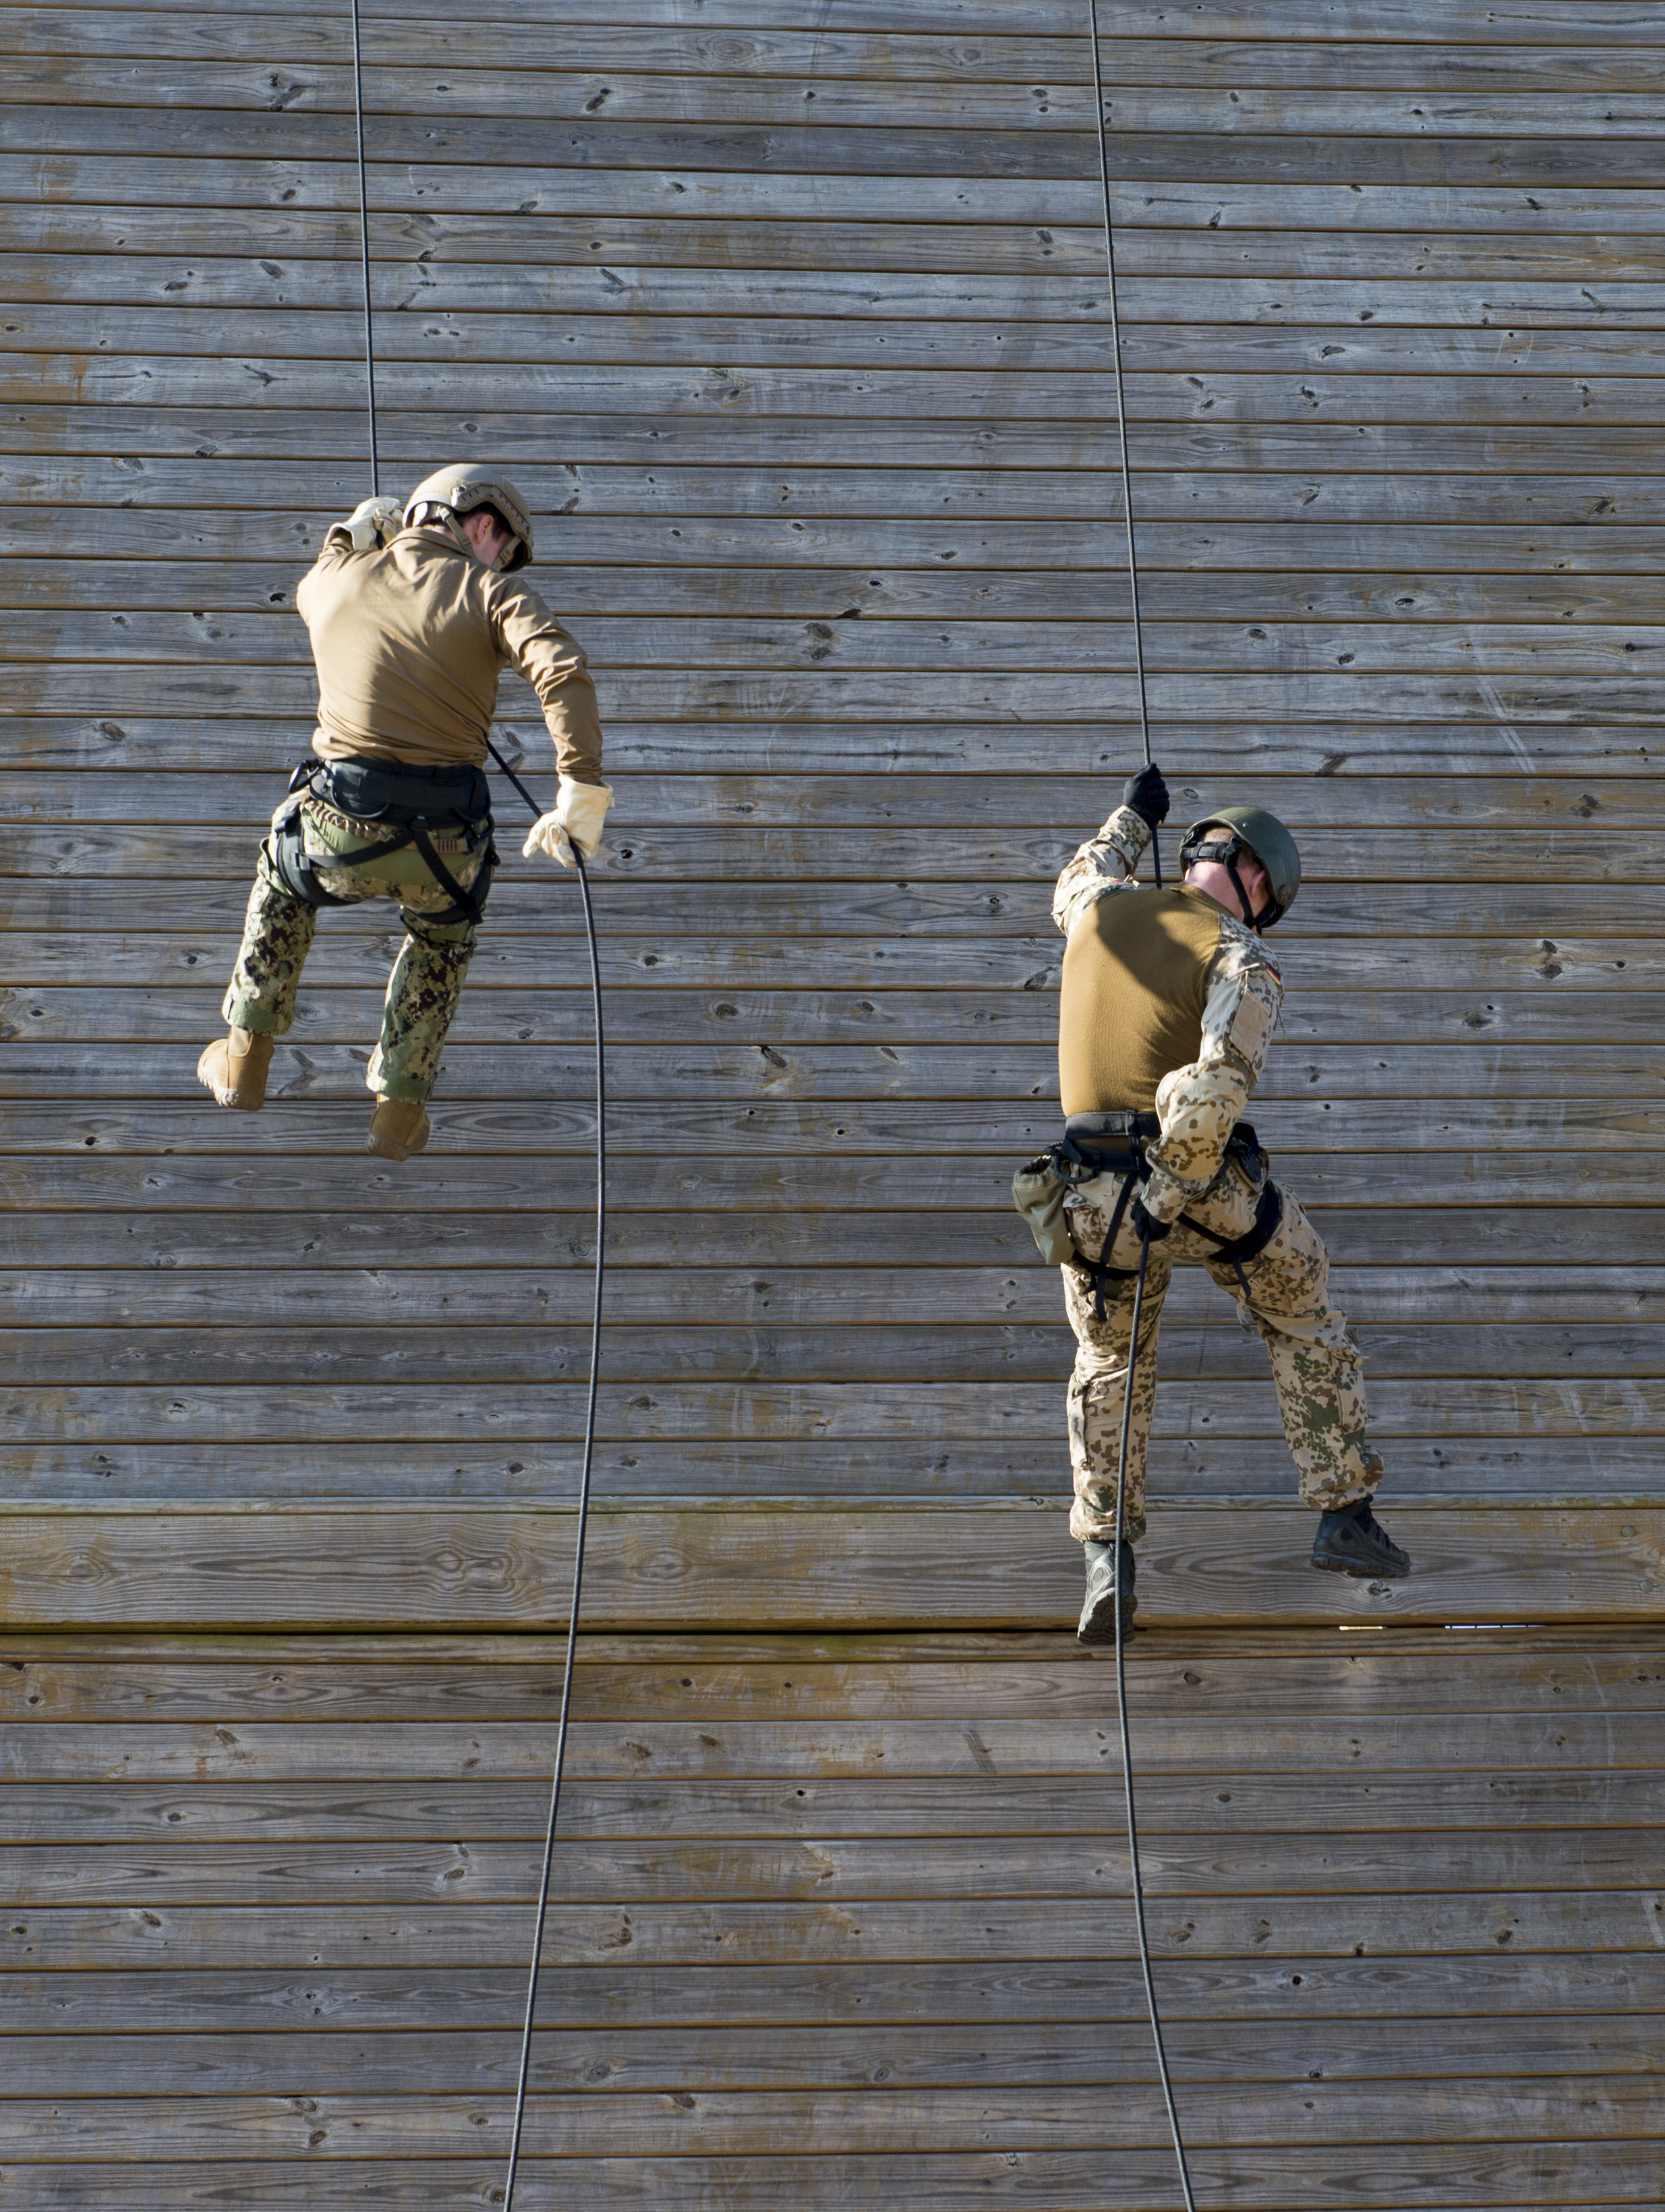 2 people rappelling down the side of an obstacle course